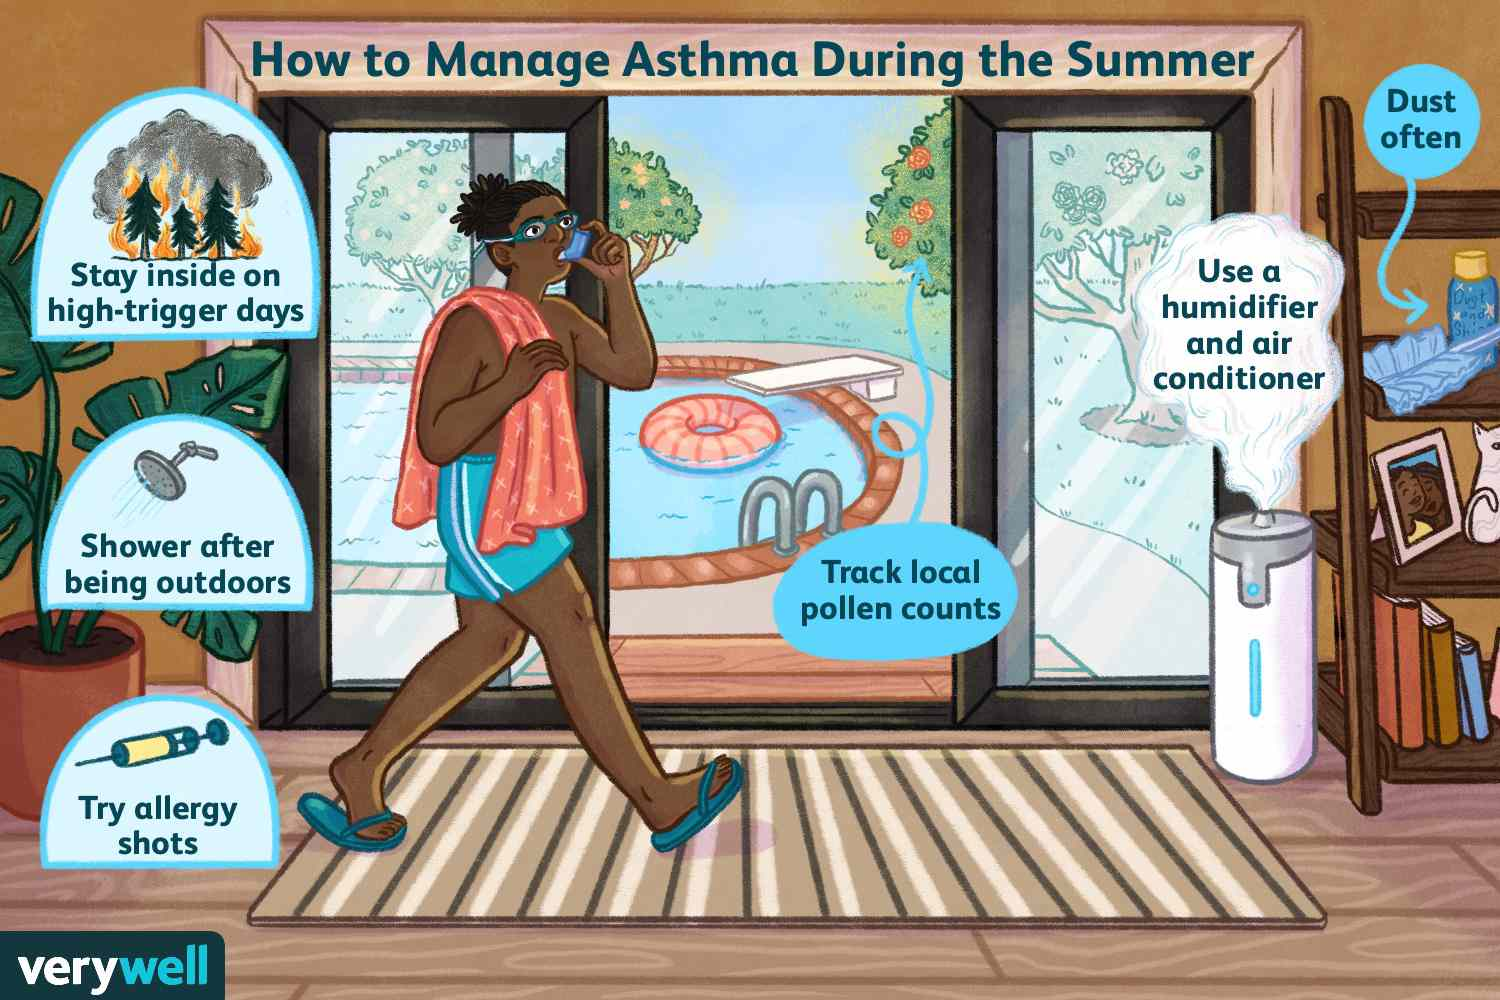 How to Manage Asthma During the Summer